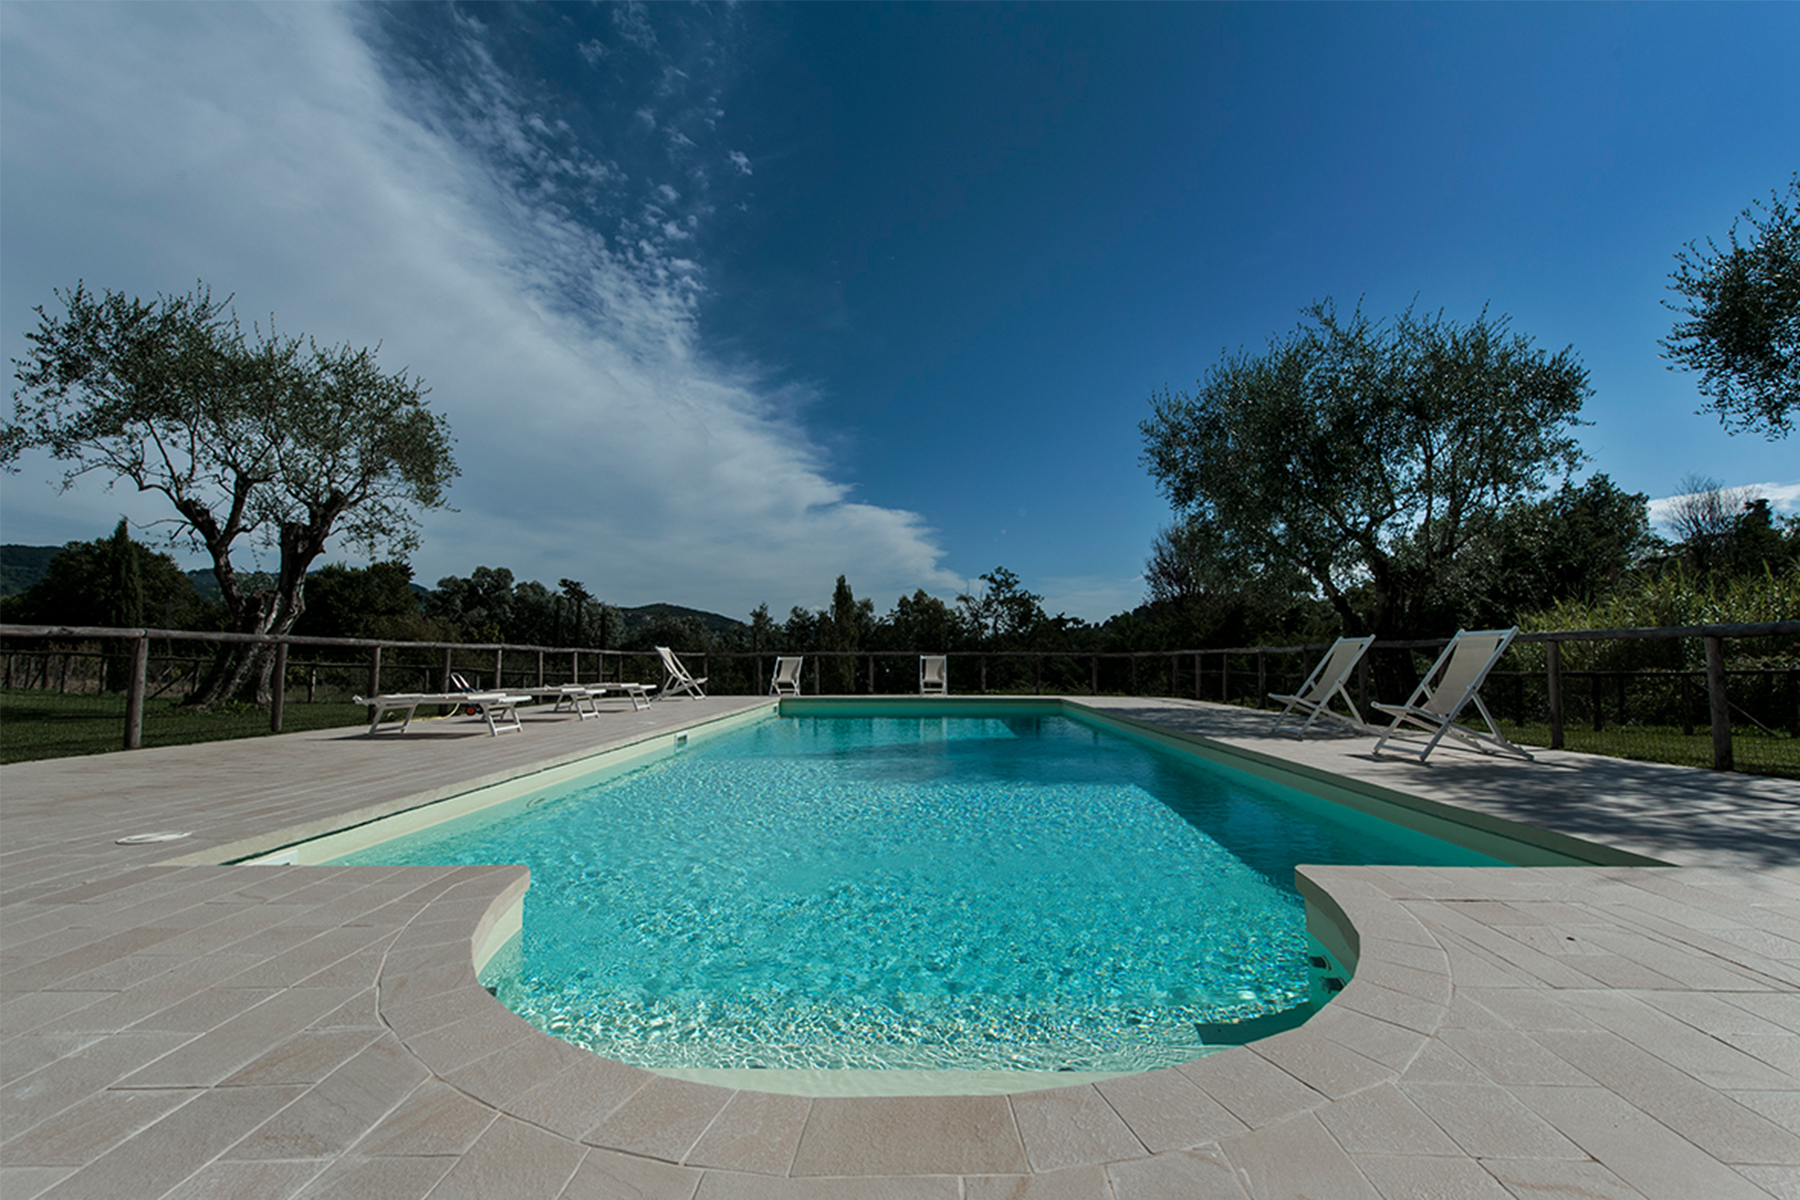 Single Family Home for Sale at Country home near Lucca Lucca, Lucca Italy